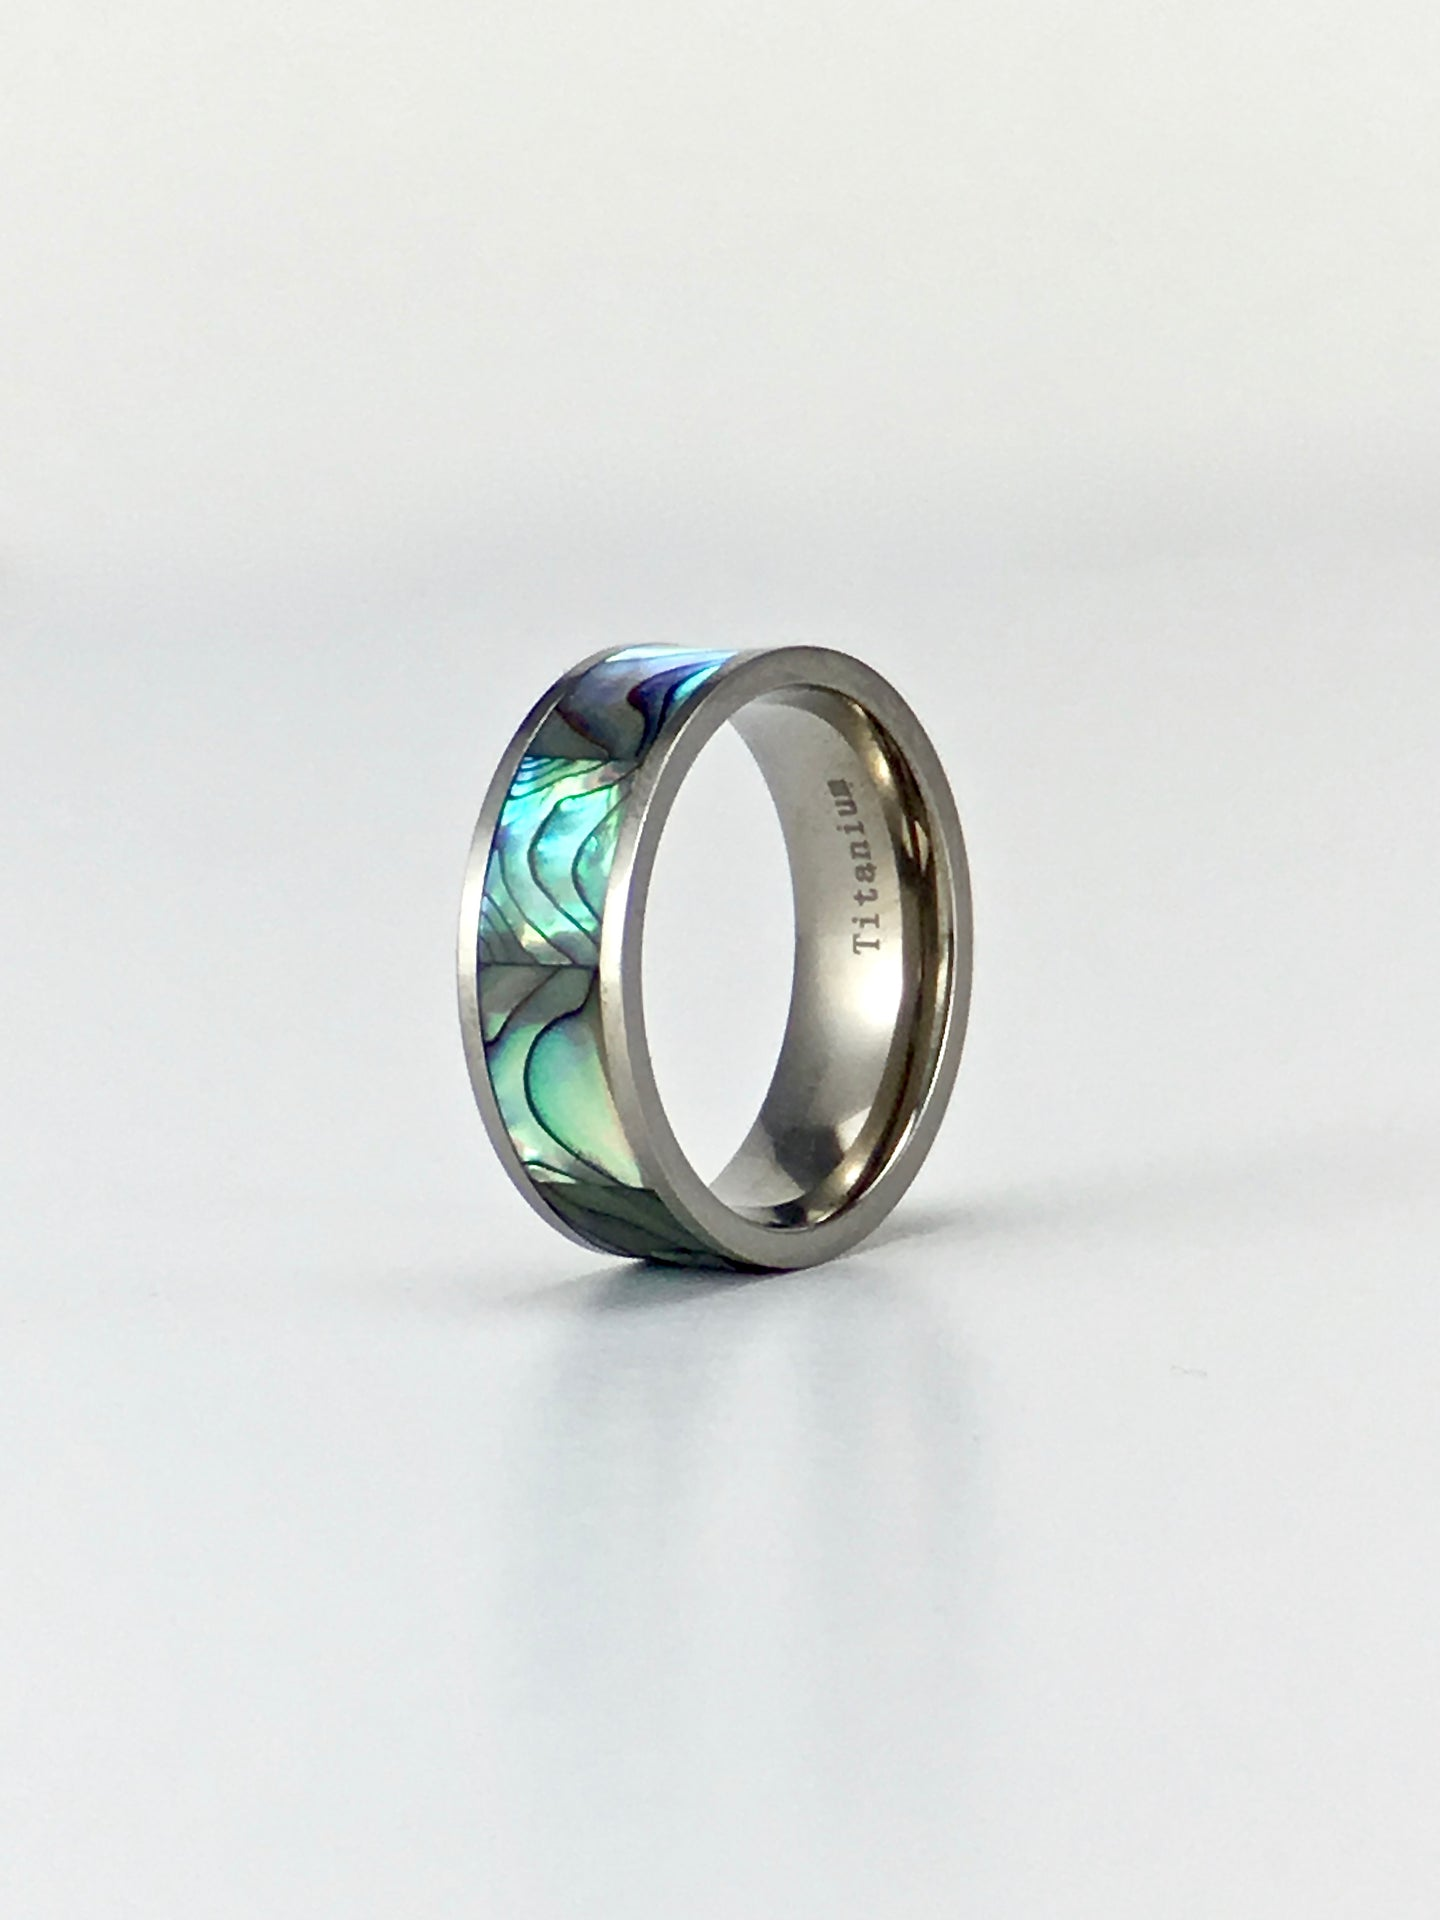 Rainbow abalone shell inlay titanium ring Ti450 8mm